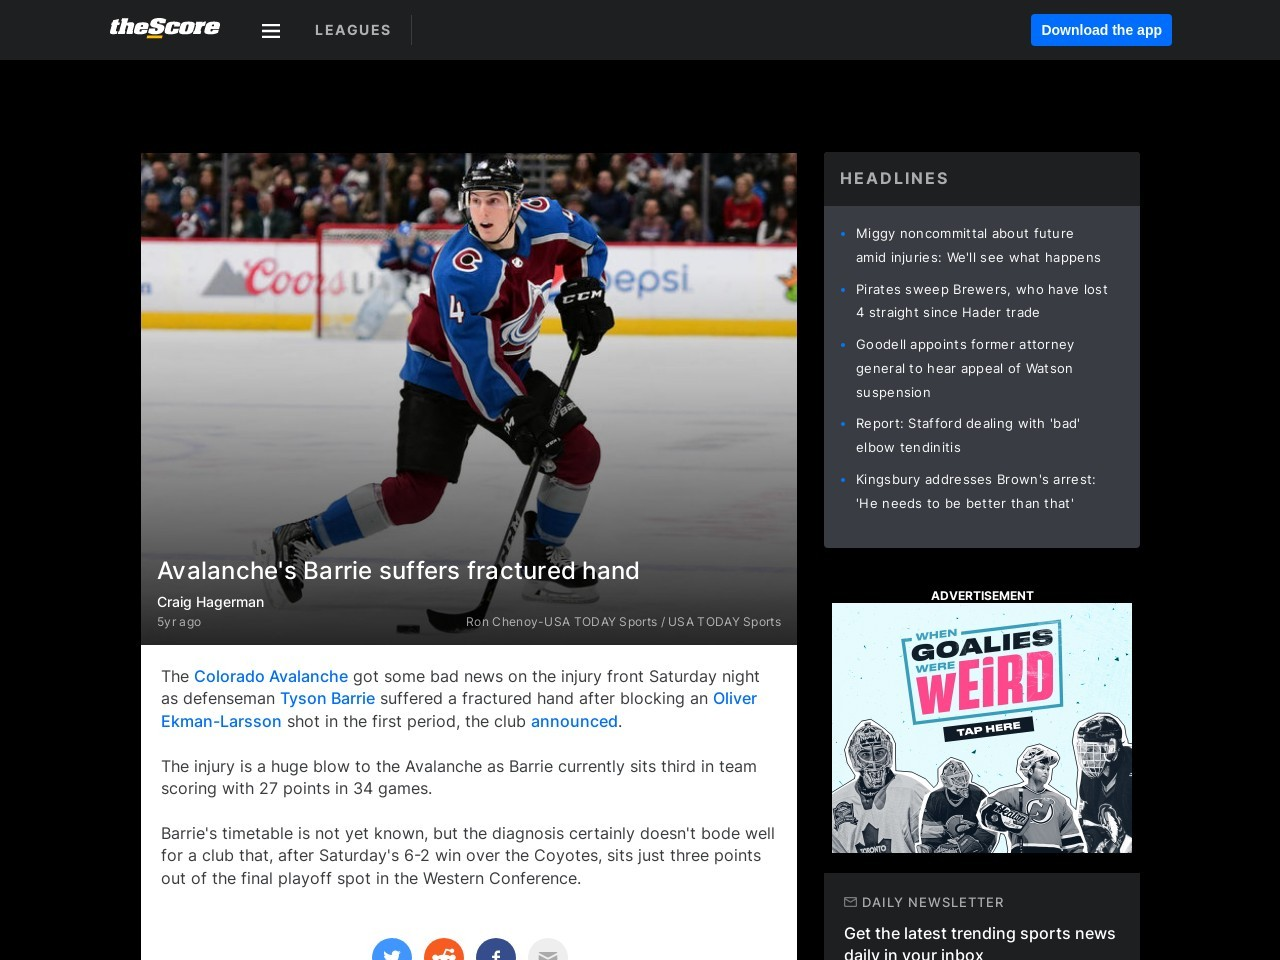 Avalanche's Barrie suffers fractured hand